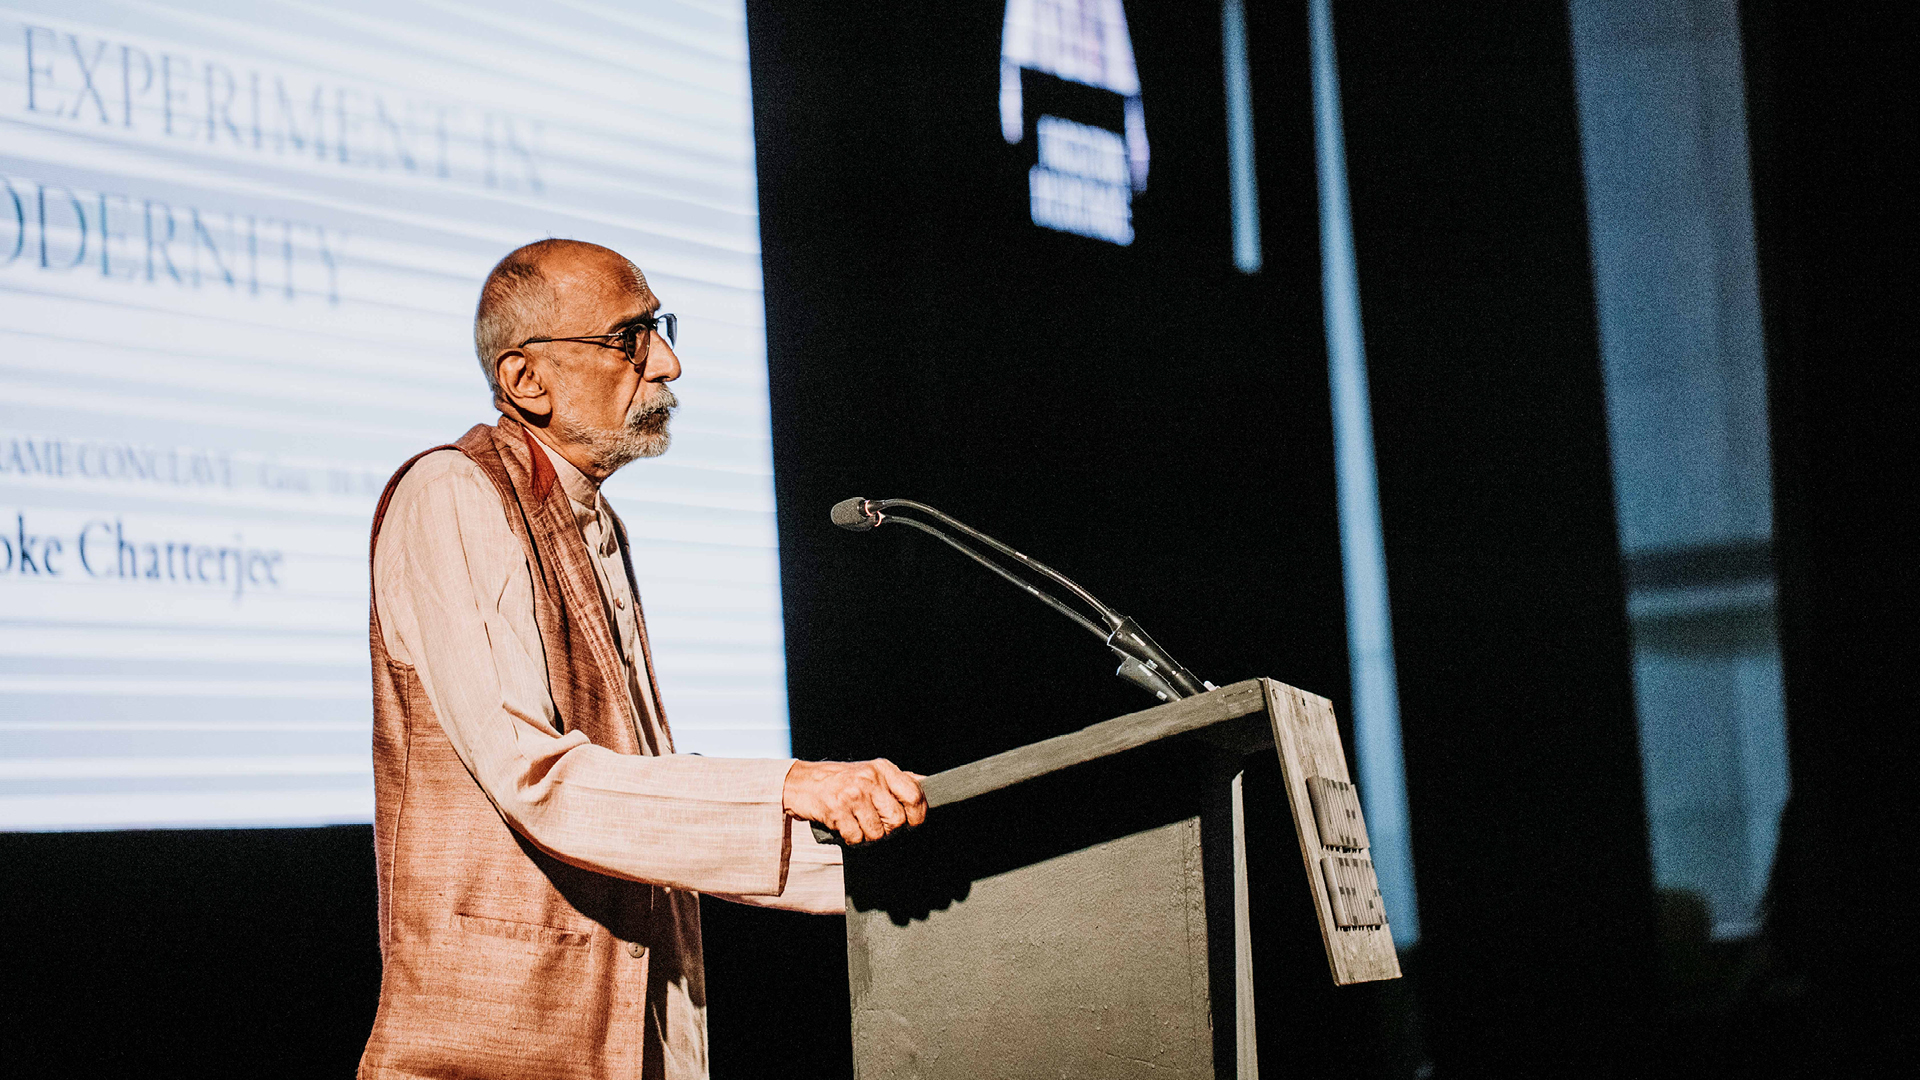 Ashoke Chatterjee addressing the audience at the Frame Conclave 2019, Goa | Design Education | Frame Conclave | Ashoke Chatterjee | STIRworld